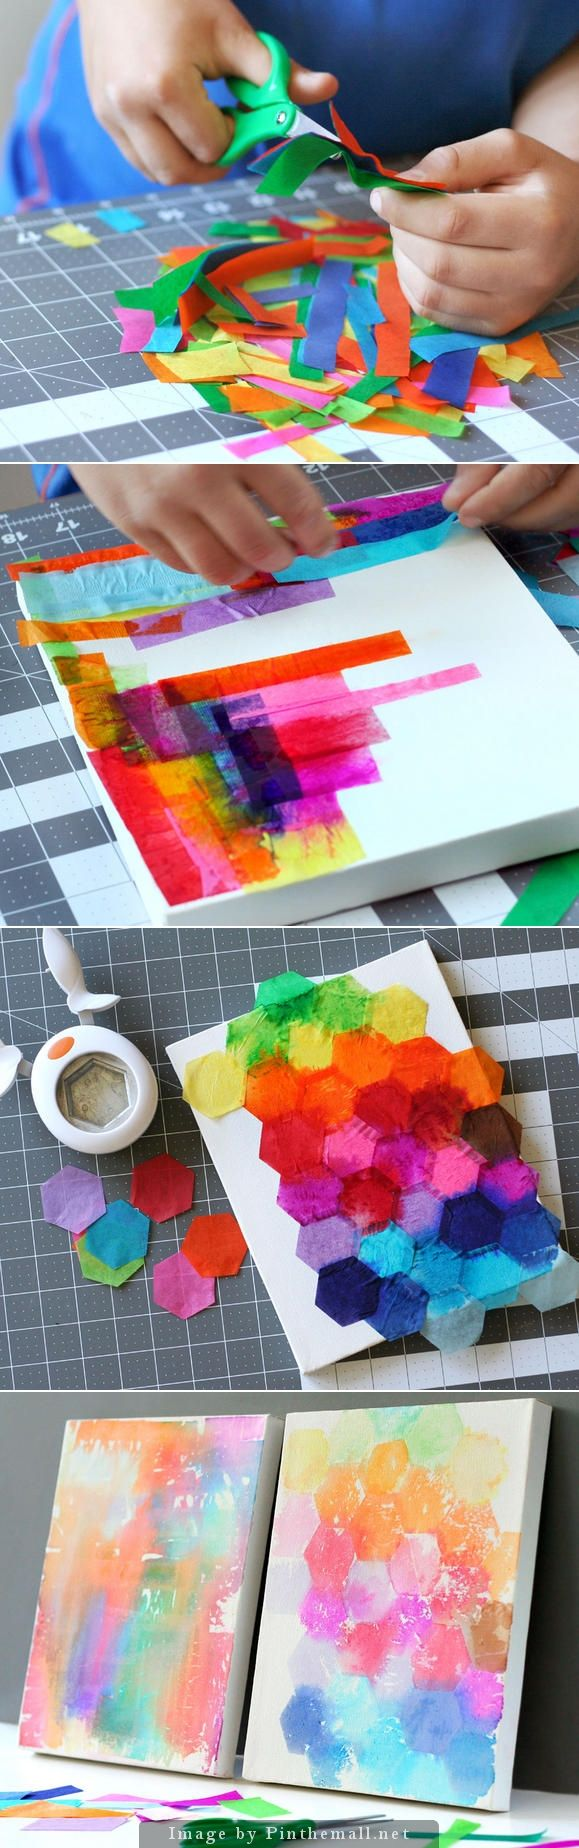 Tissue Paper Art - paint canvas with water. Apply cut tissue paper. Allow to dry. Remove to reveal colour transfer.